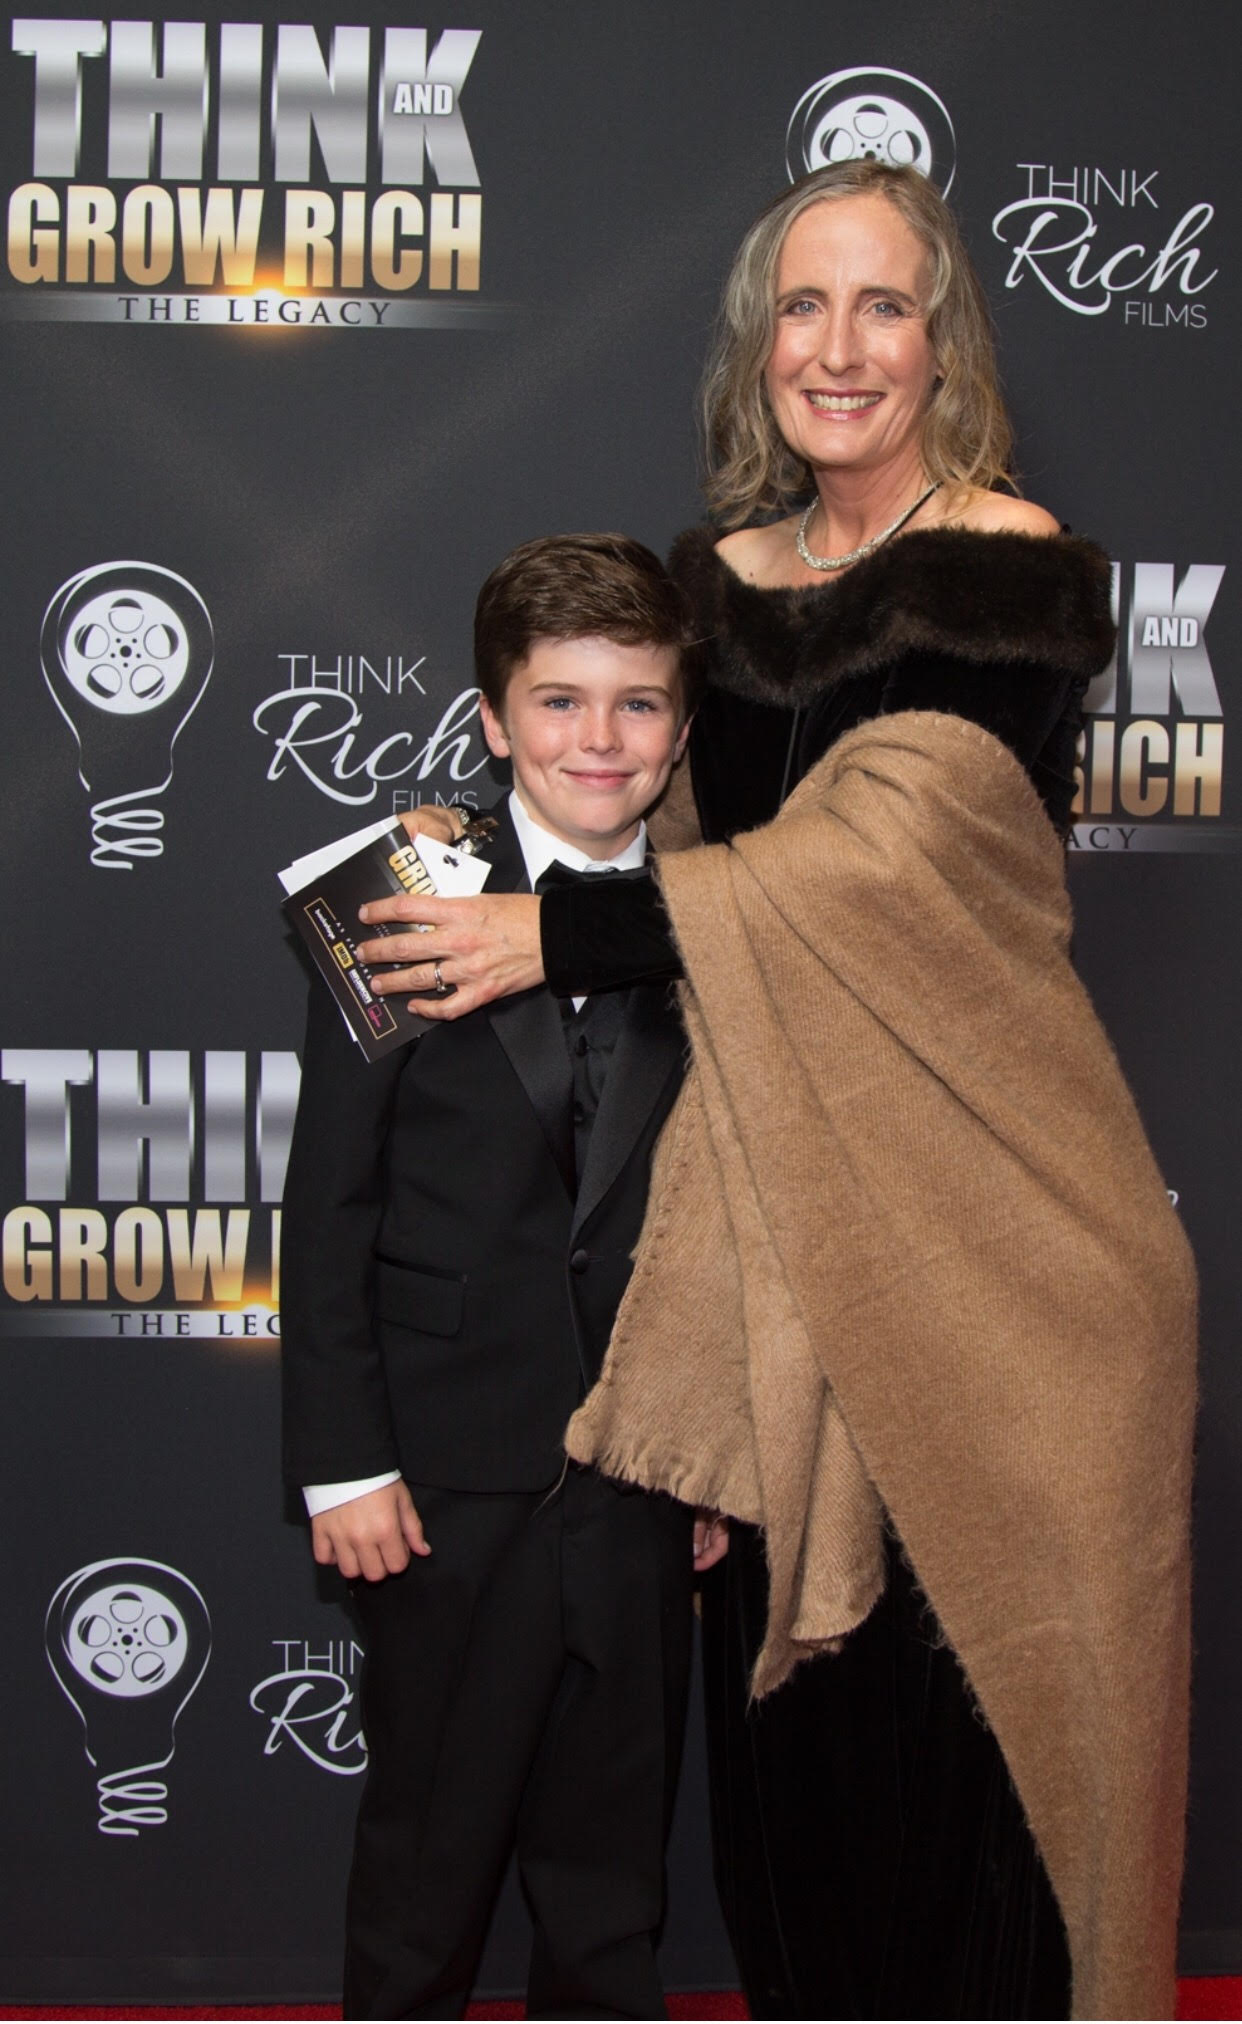 Teddy and Mom Movie Premiere.jpg